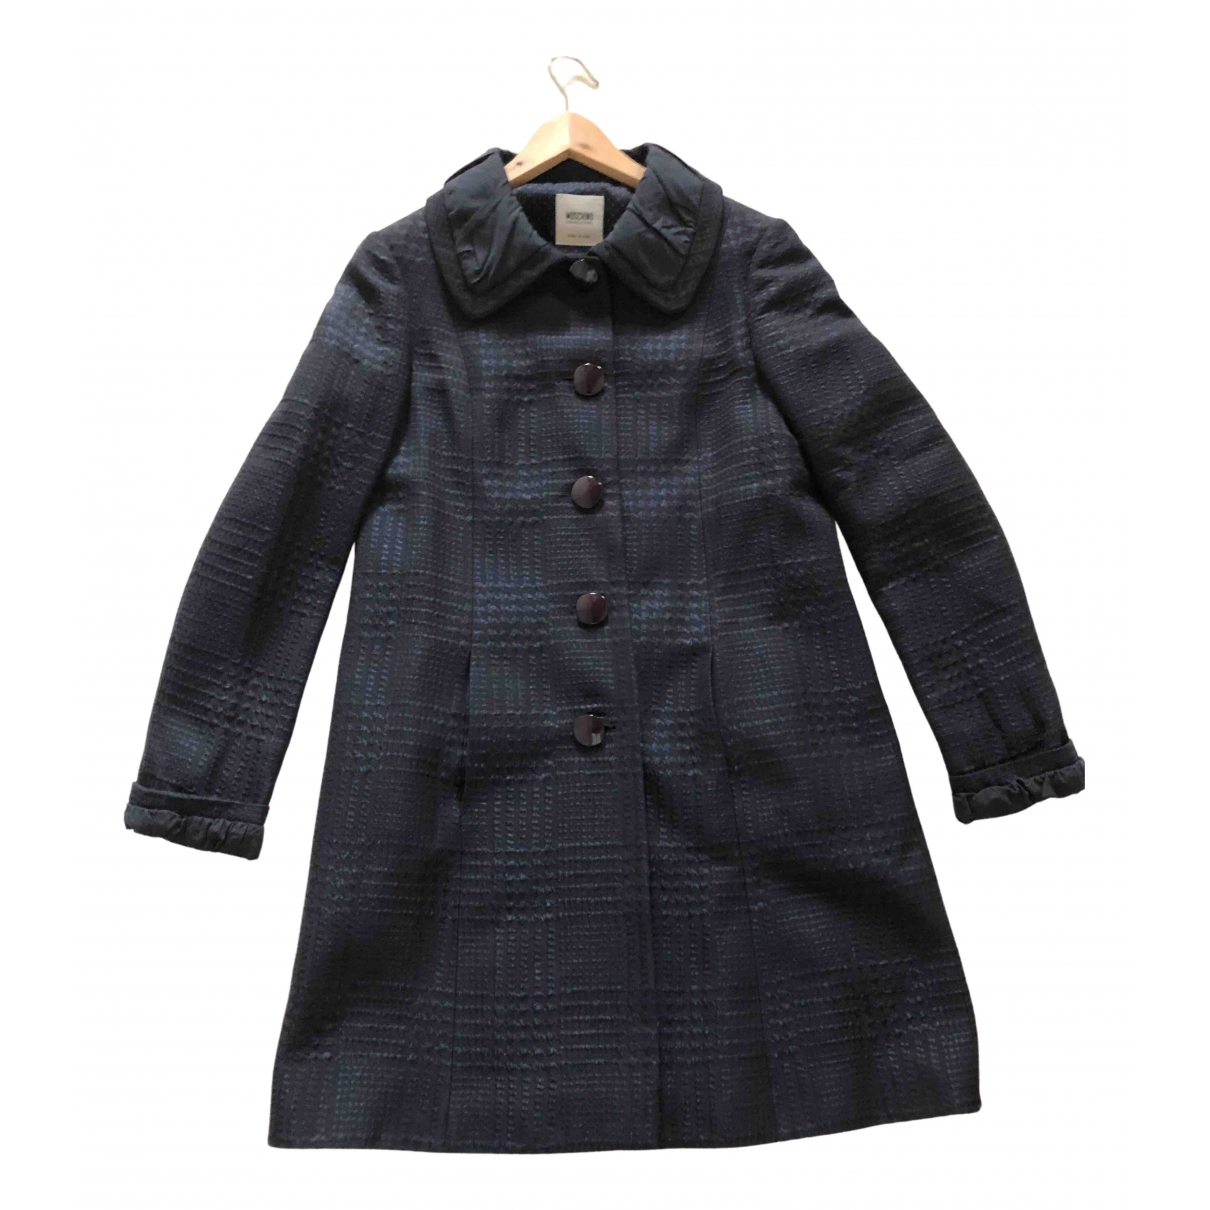 Moschino Cheap And Chic \N Navy coat for Women 42 IT